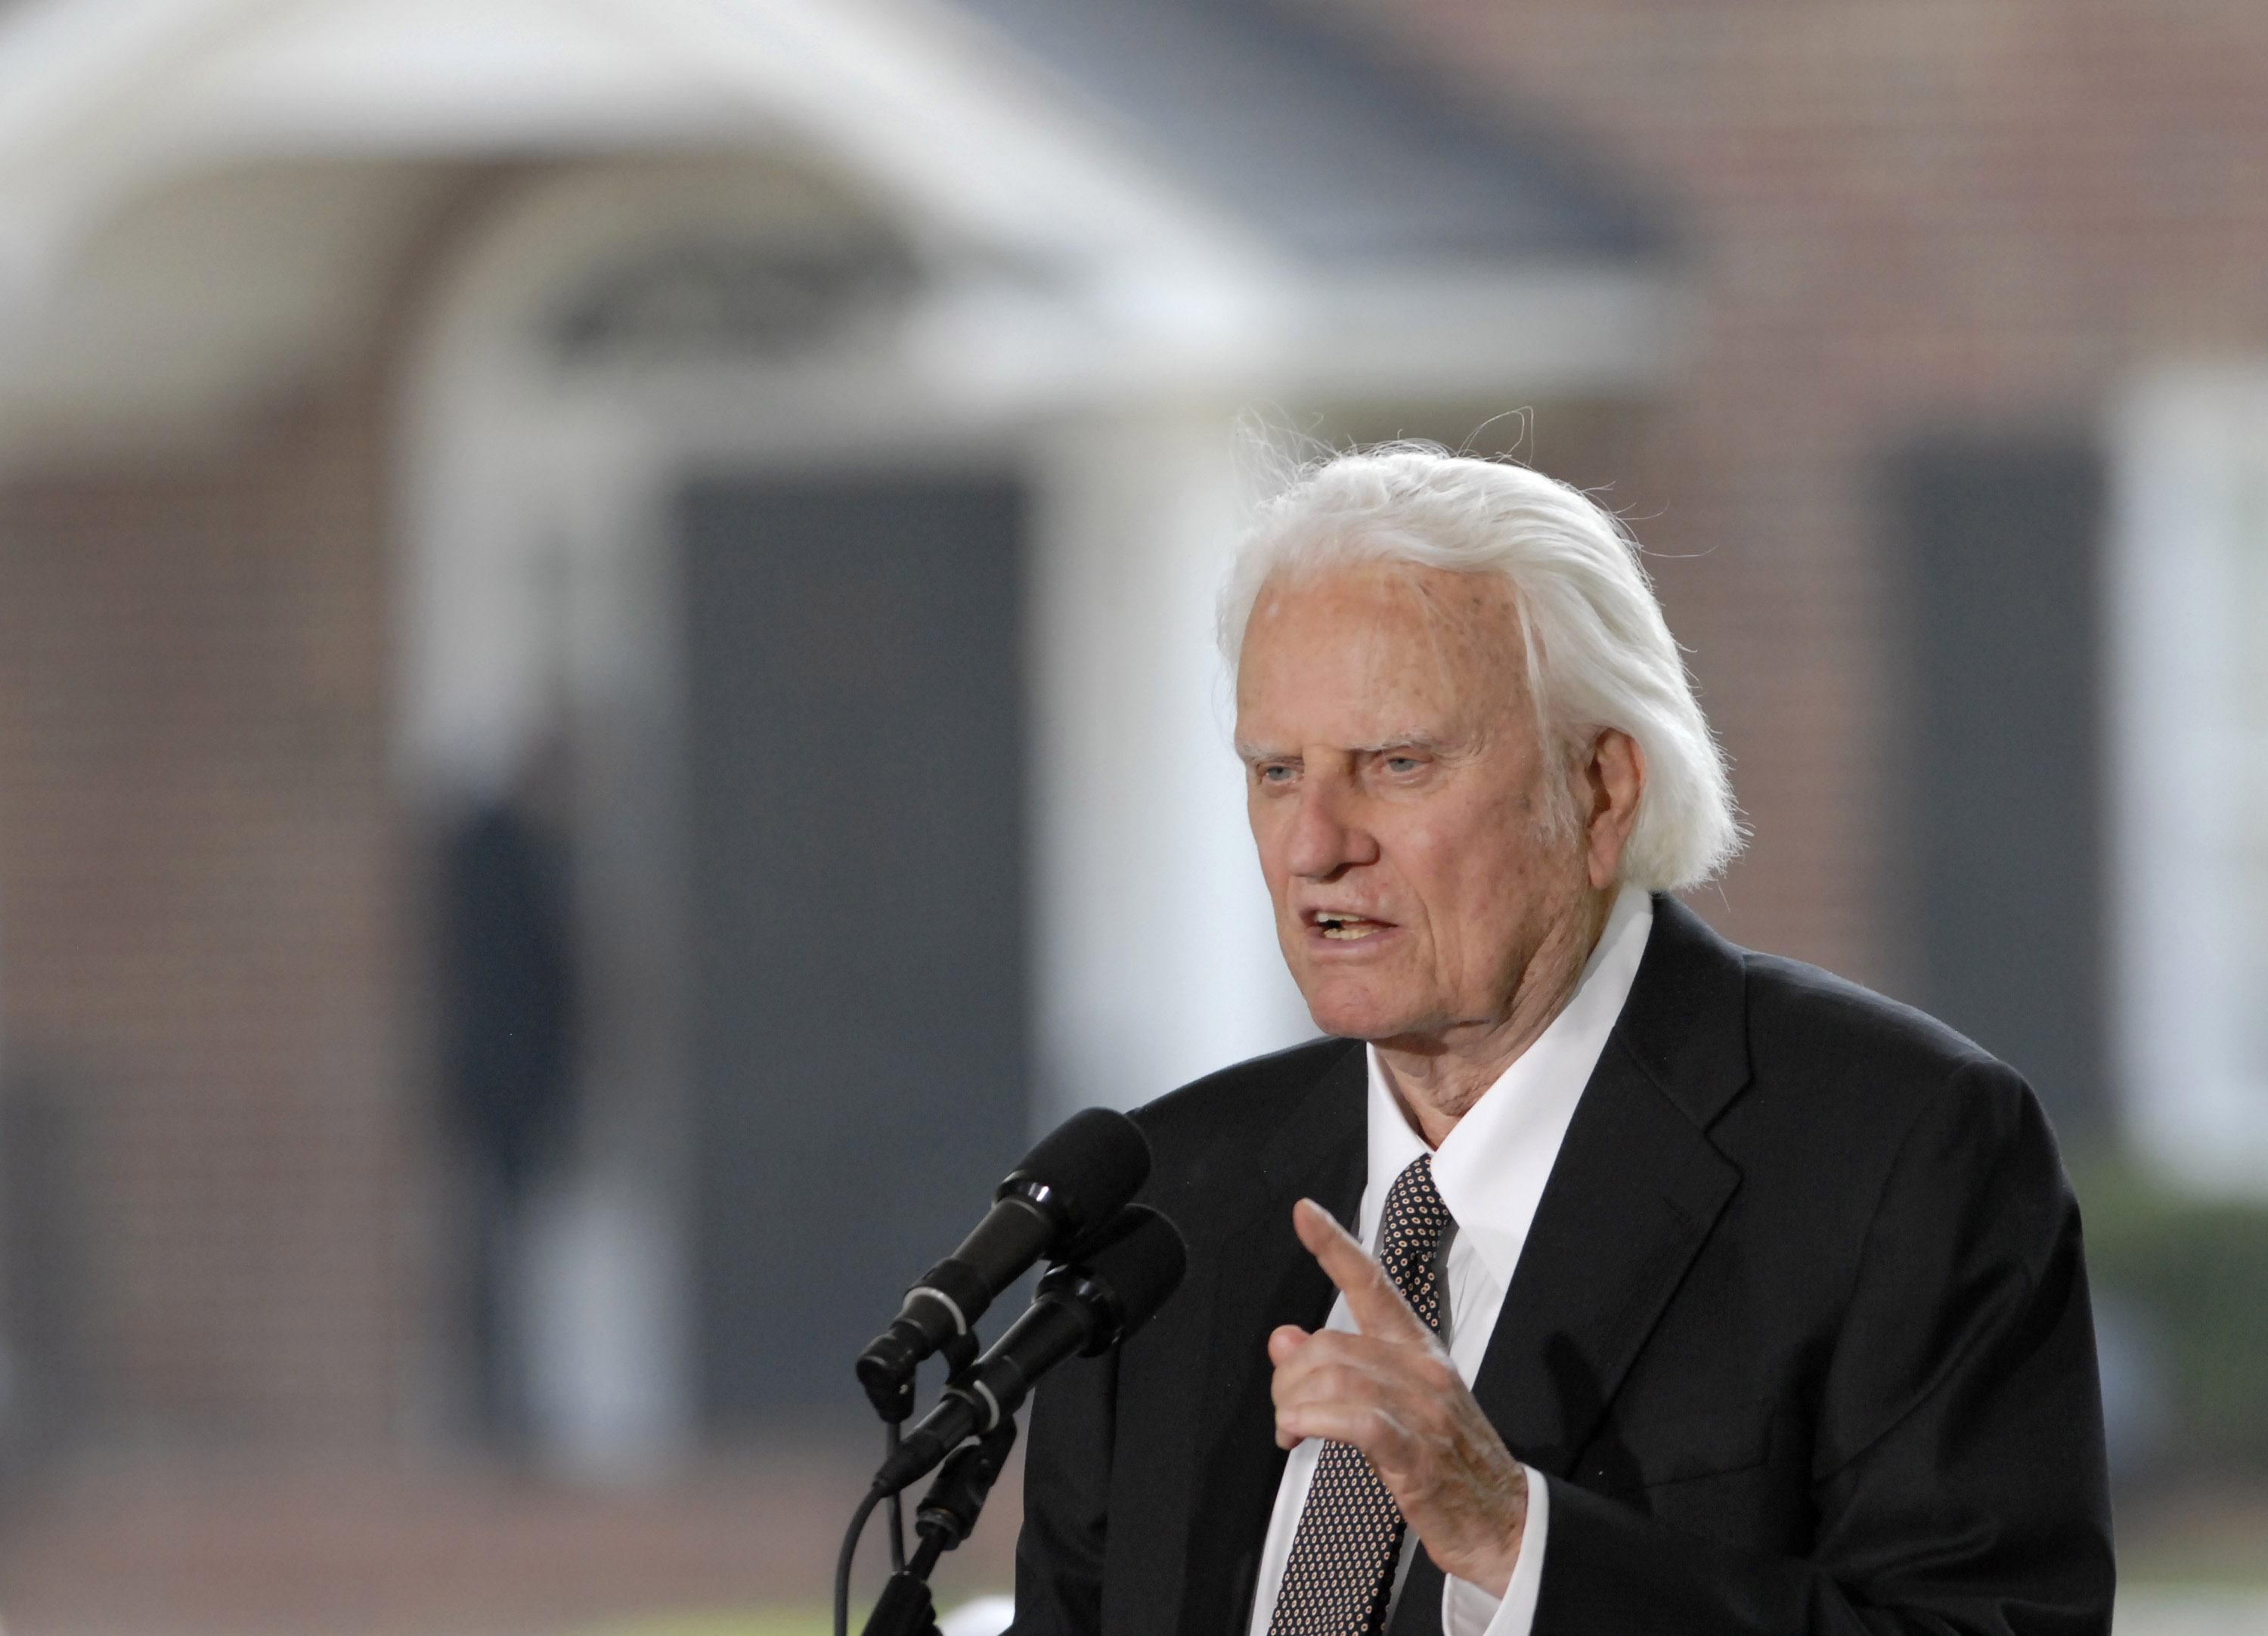 Evangelist Billy Graham speaks into microphone